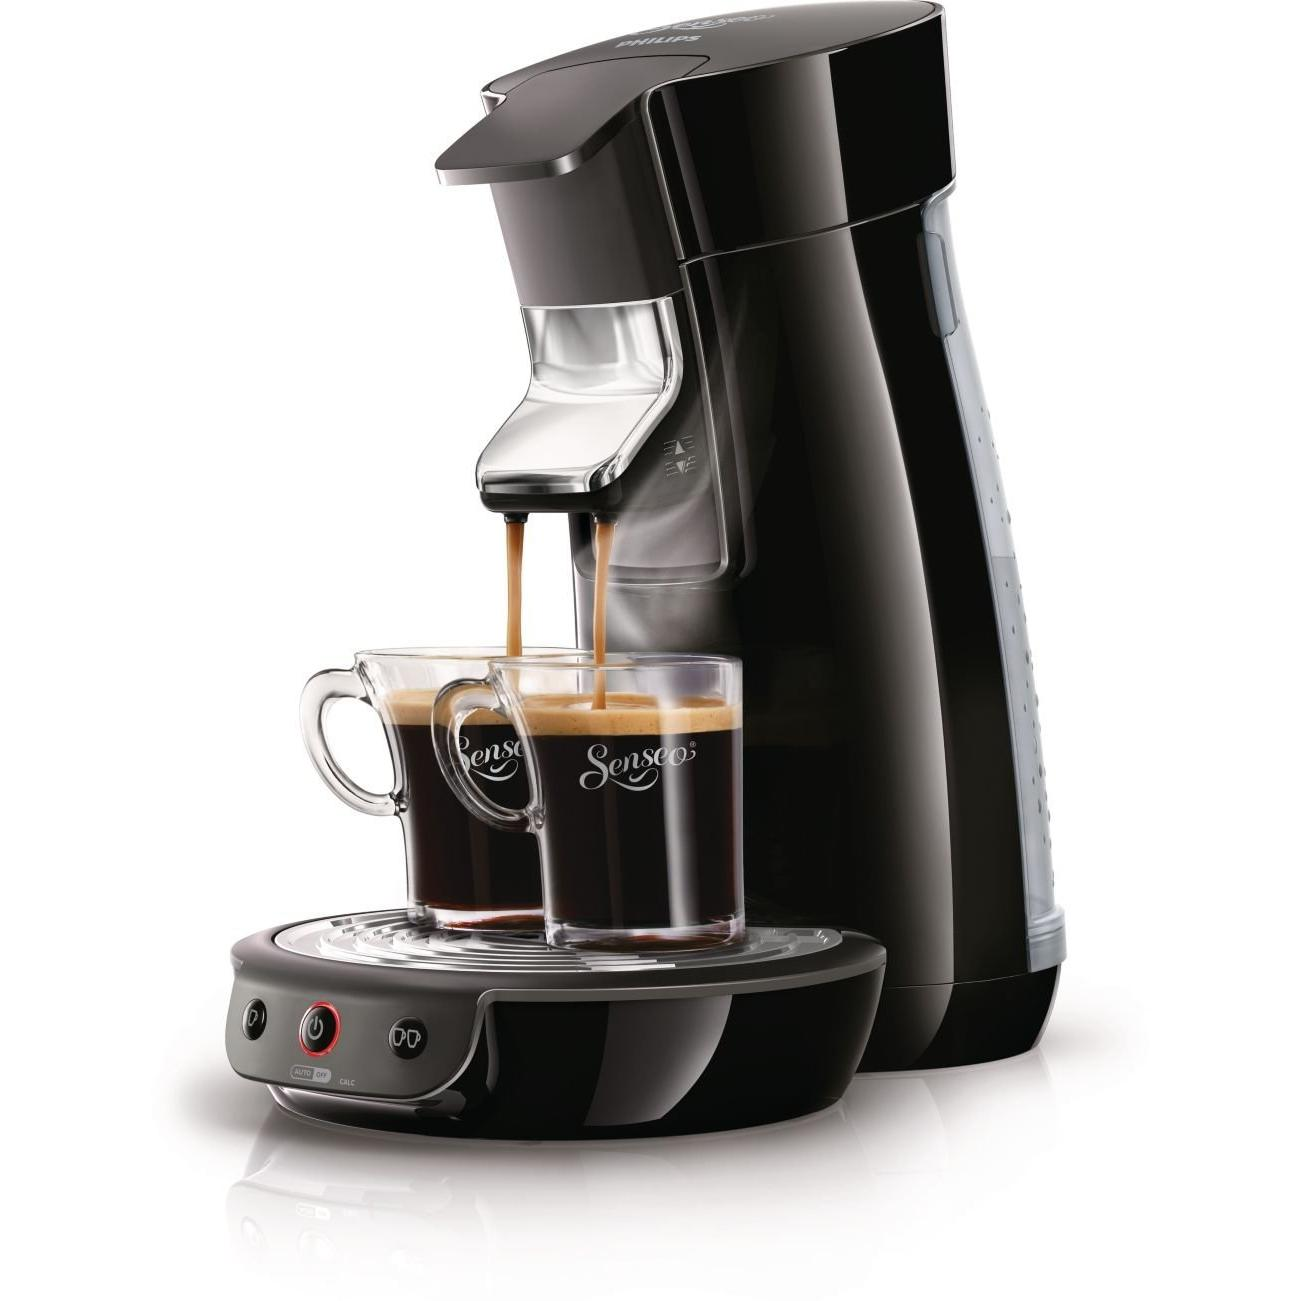 Cafetiere Philips Senseo Hd7864/61